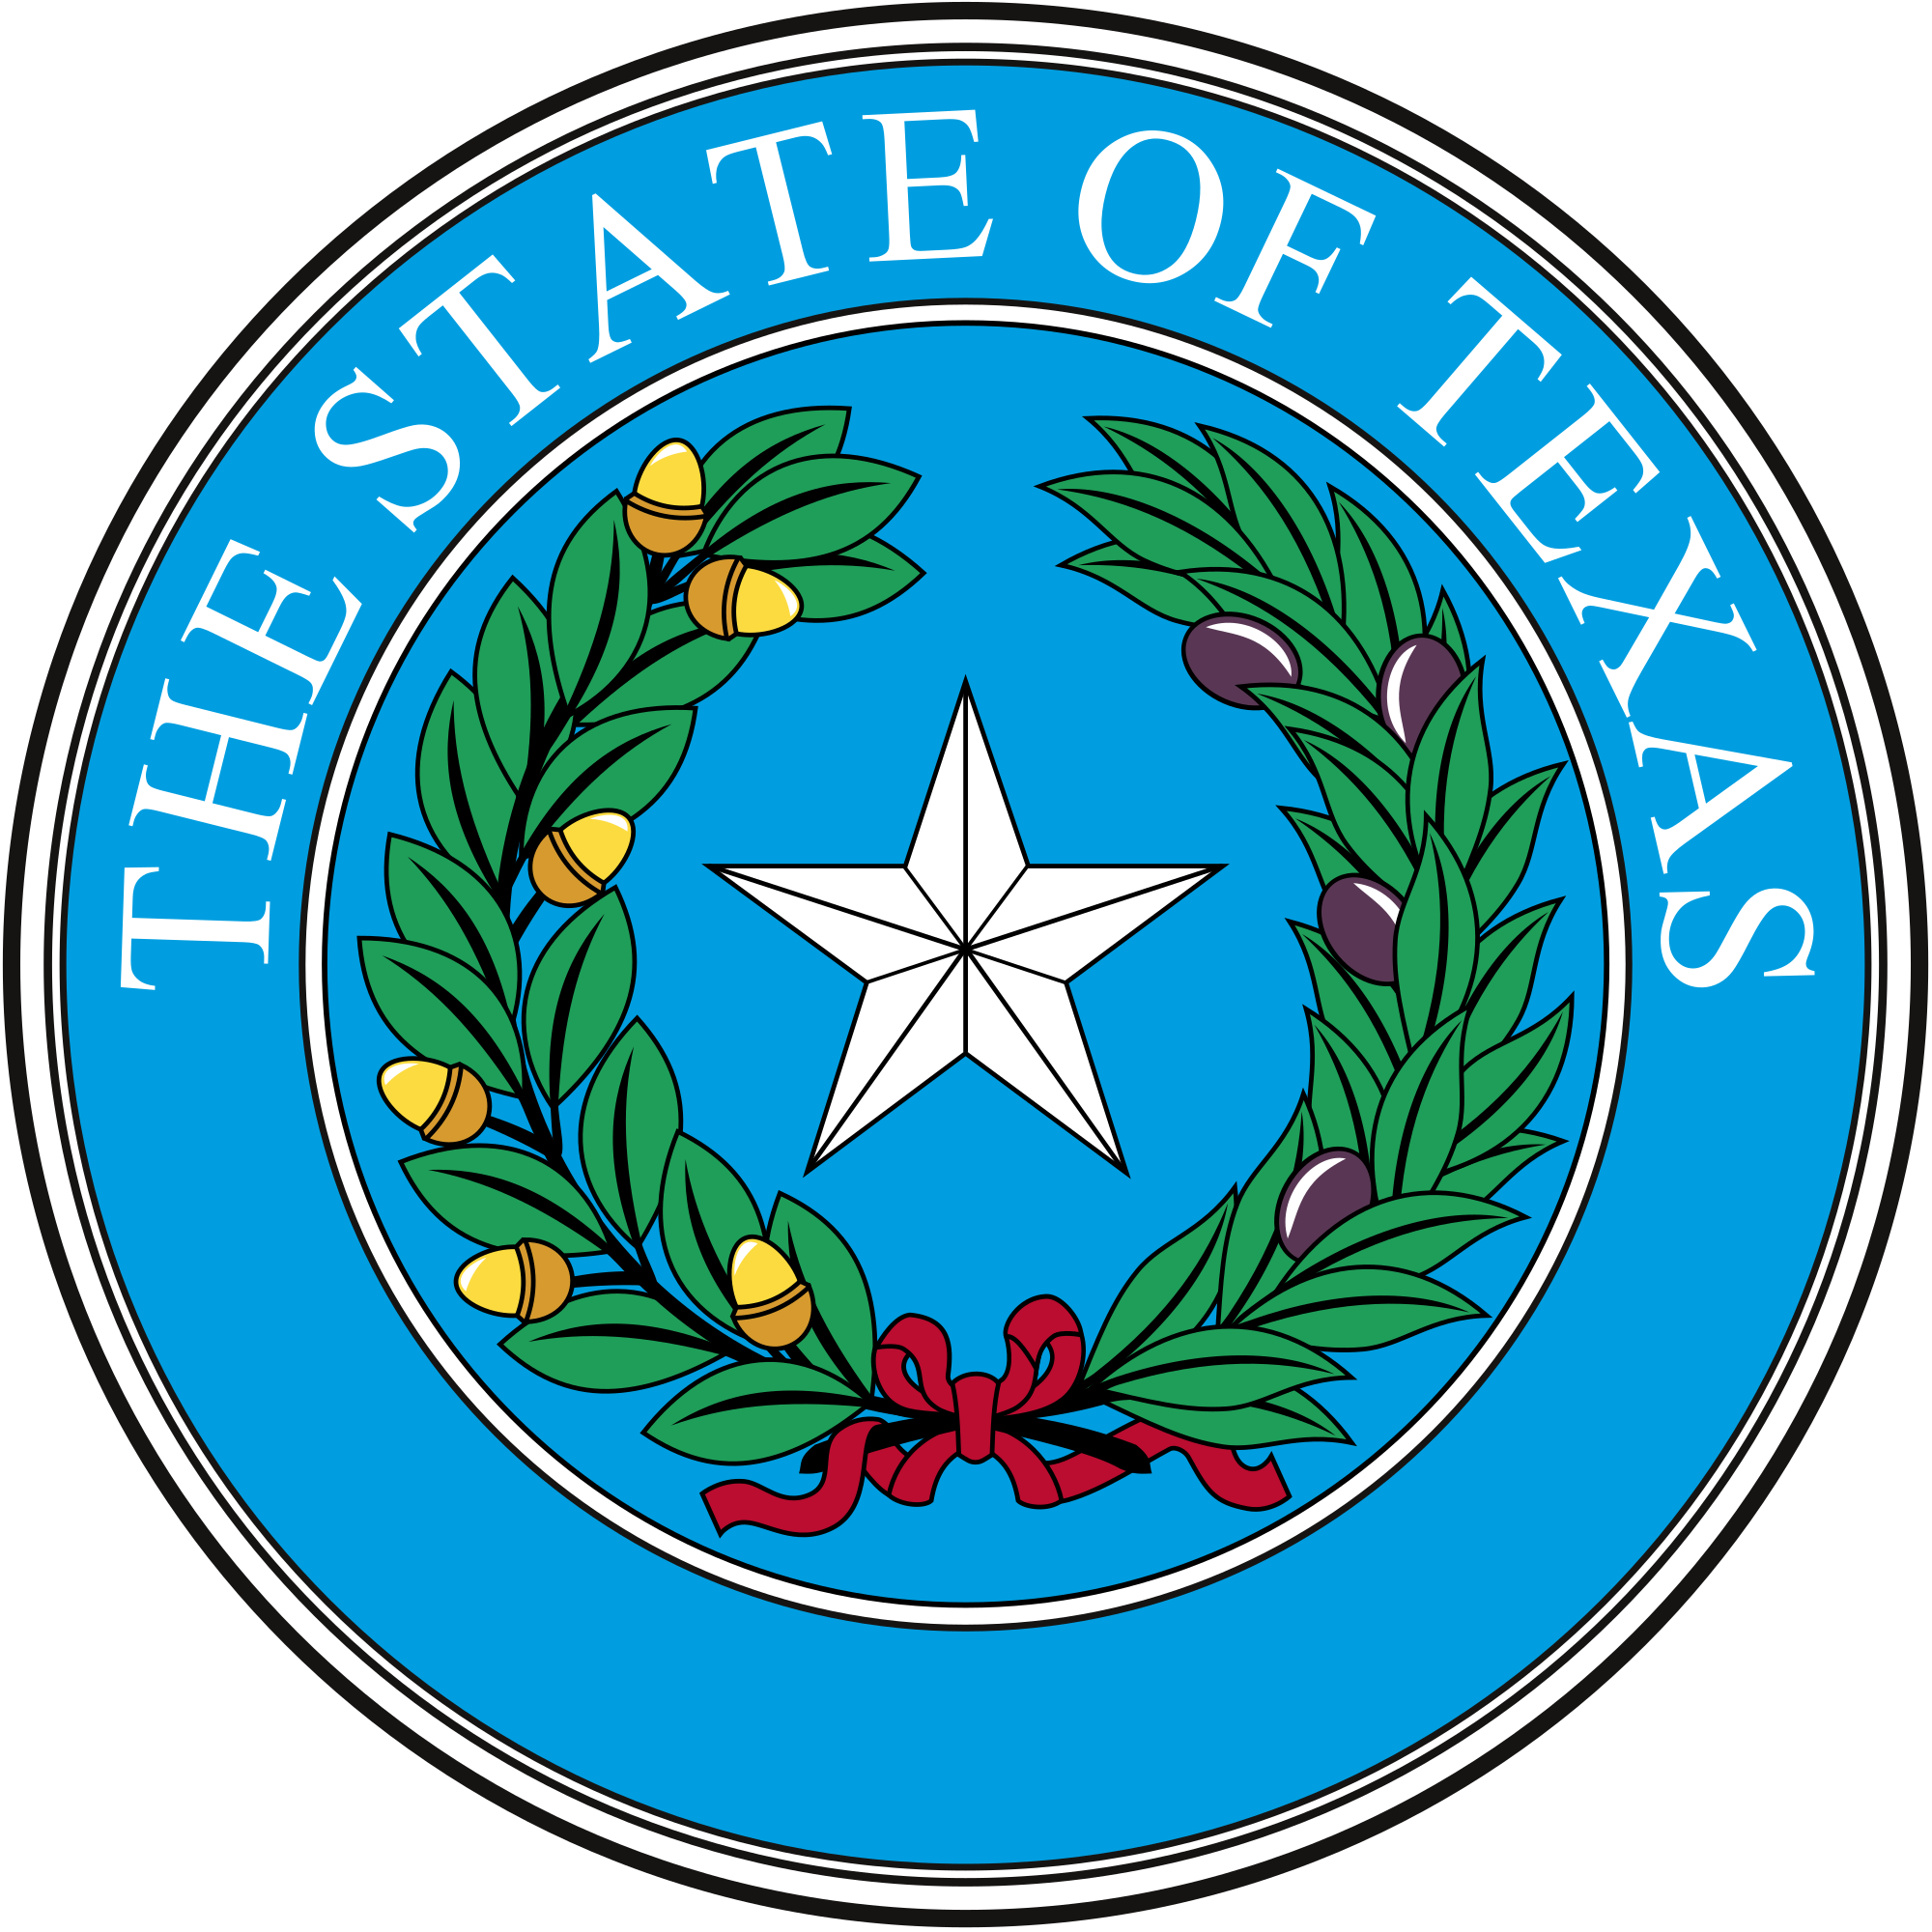 Texas house of repersentive clipart png transparent library Texas Legislature - Wikipedia png transparent library